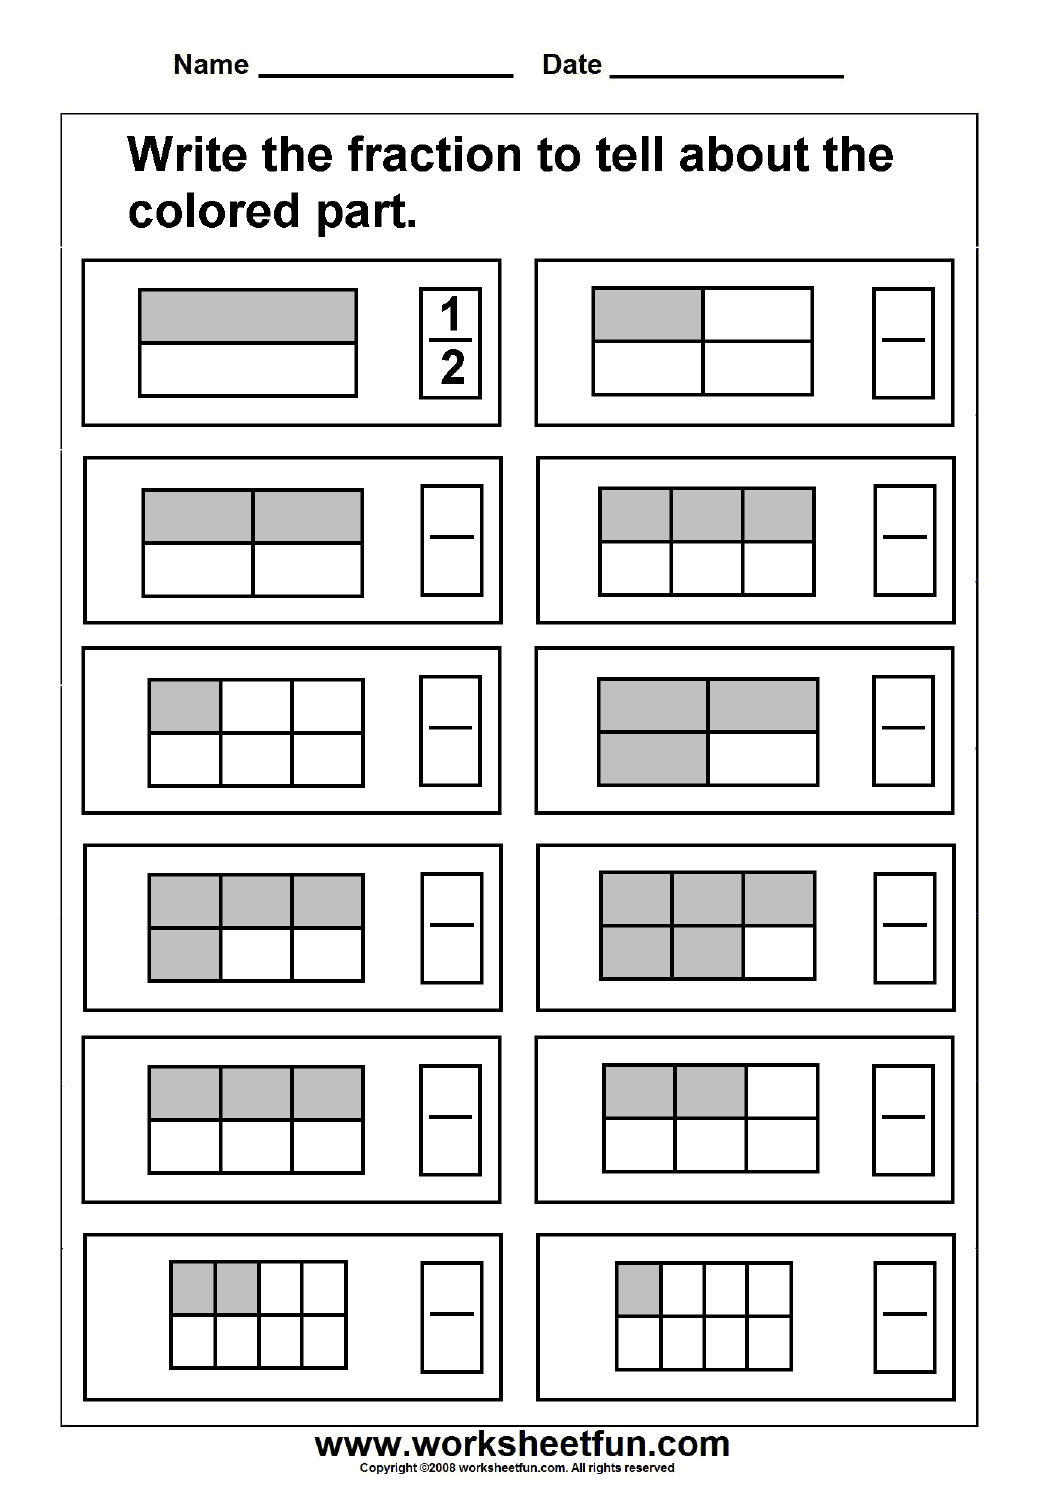 Fraction Model FREE Printable Worksheets Worksheetfun – Multiplying Fractions Using Models Worksheet